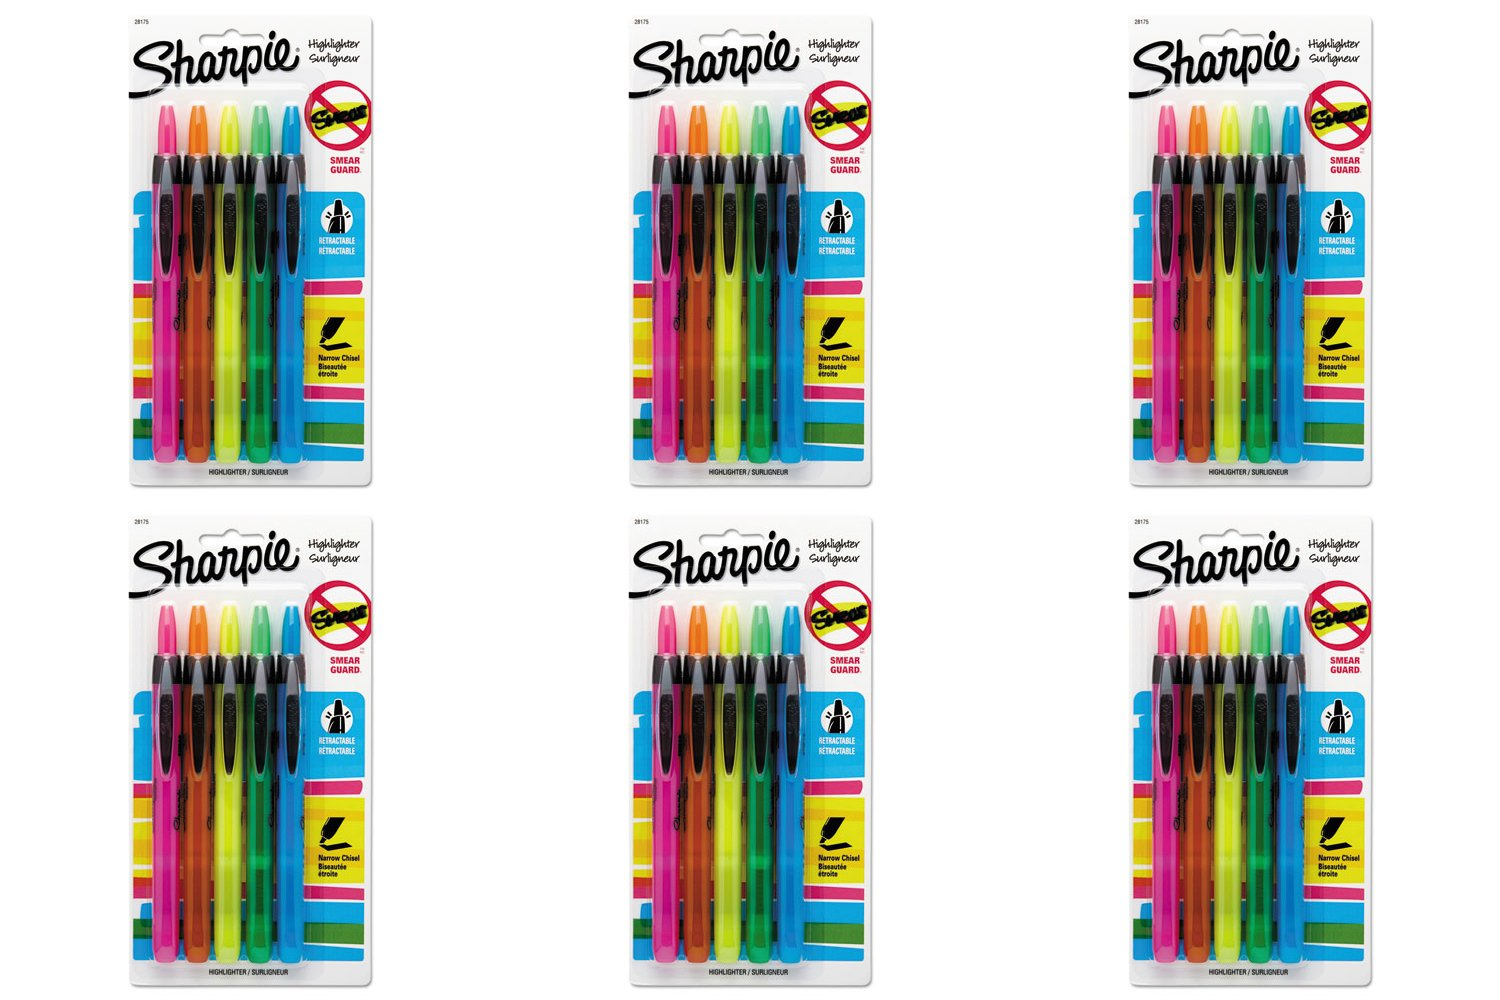 Sharpie Accent Retractable Highlighters, 6 Packs by Sharpie (Image #1)